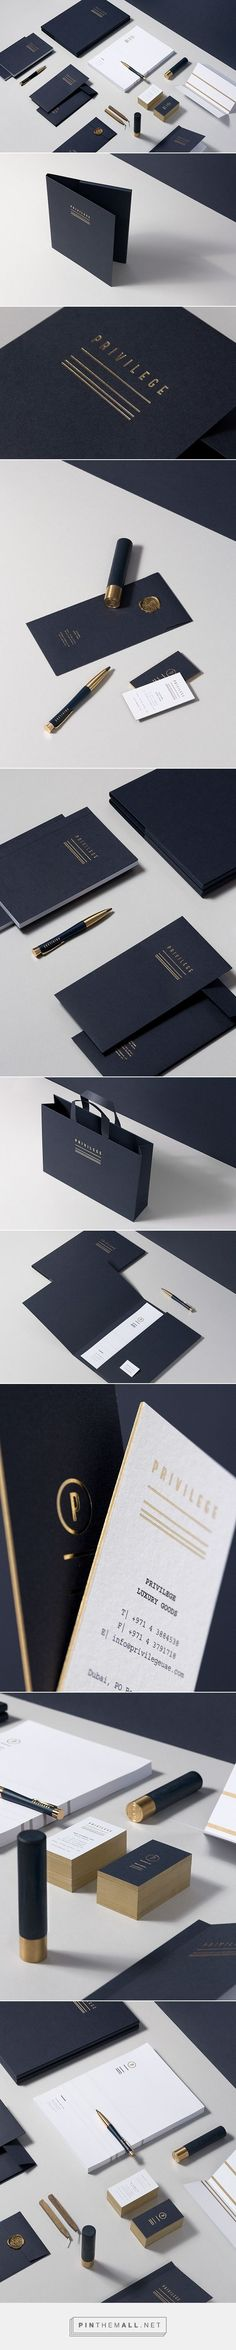 Privilege Branding Design